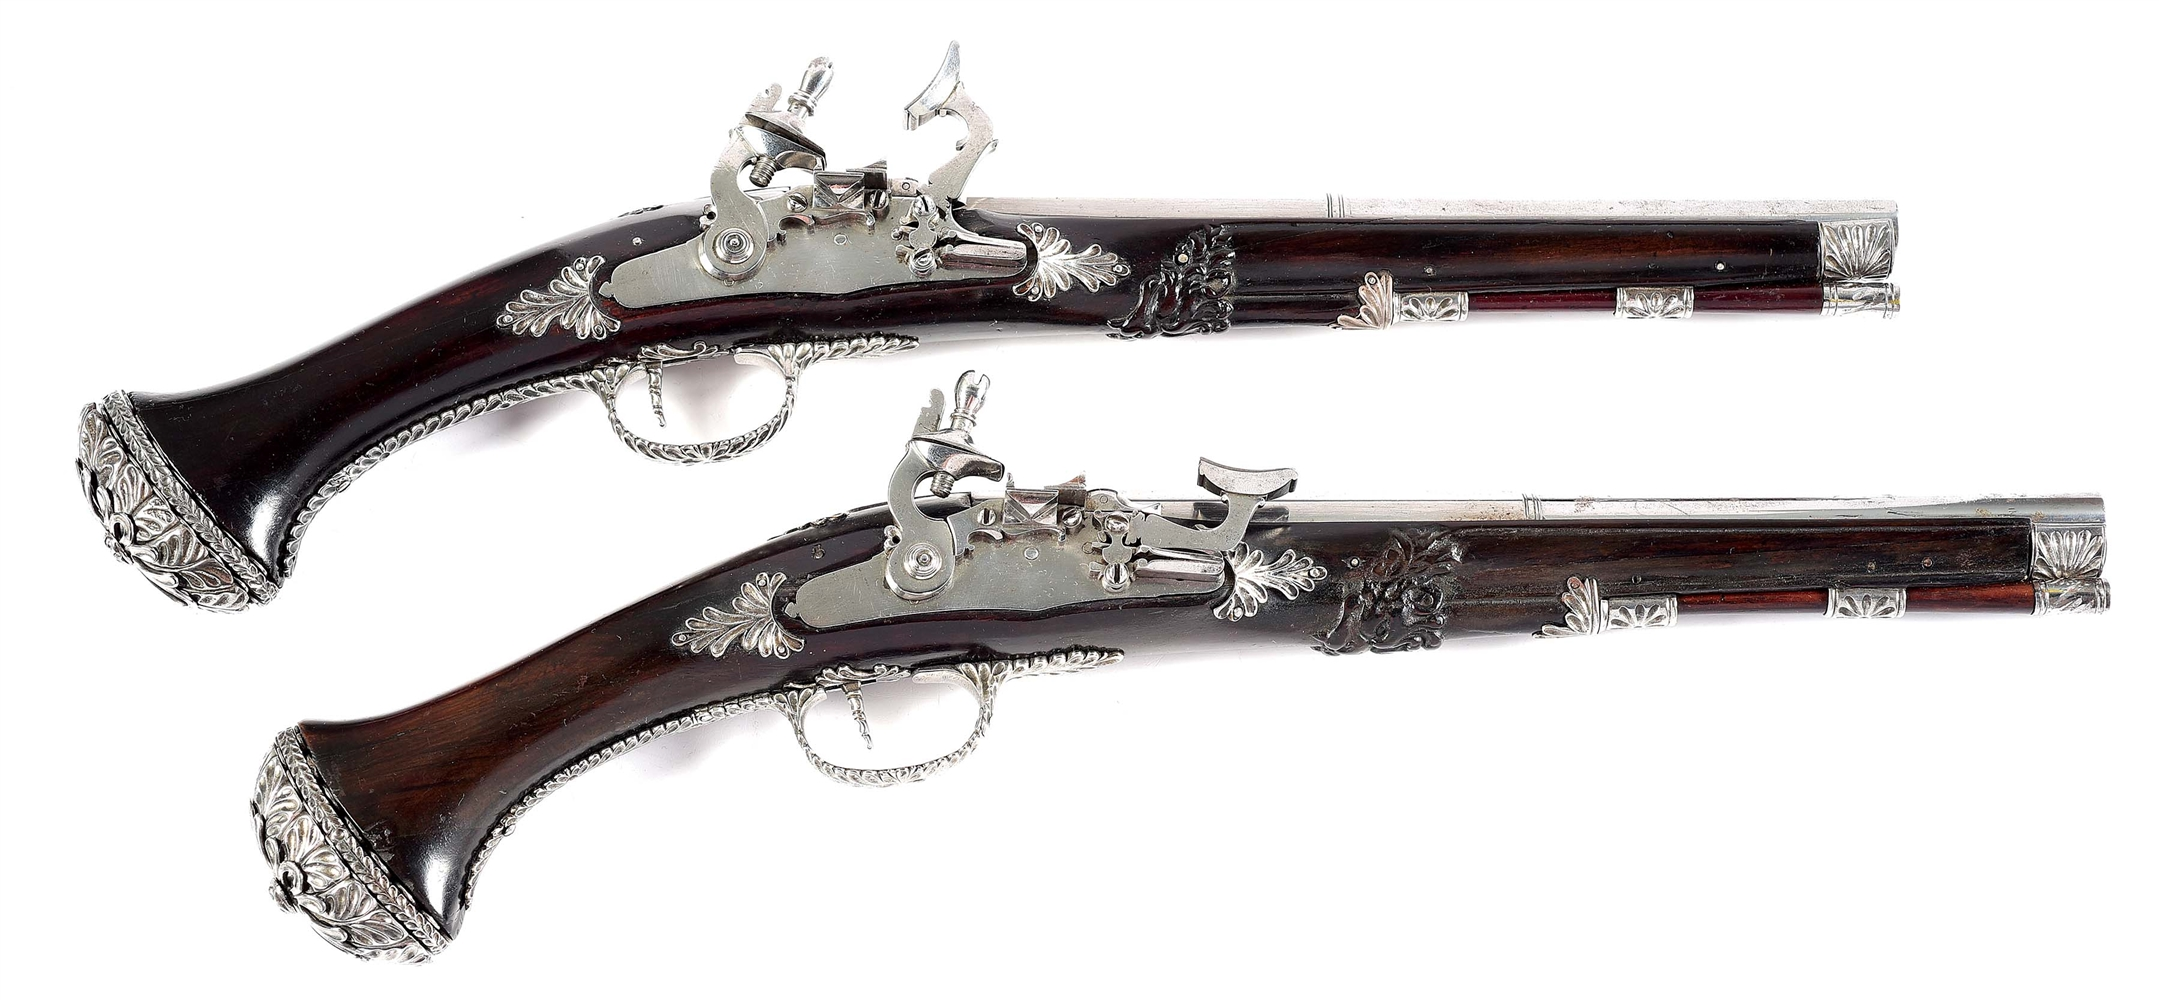 (A) SNAPHAUNCE PISTOLS WITH ORNATE MOUNTINGS IN THE STYLE OF 17TH CENTURY SWISS, EX. W.G. RENWICK.